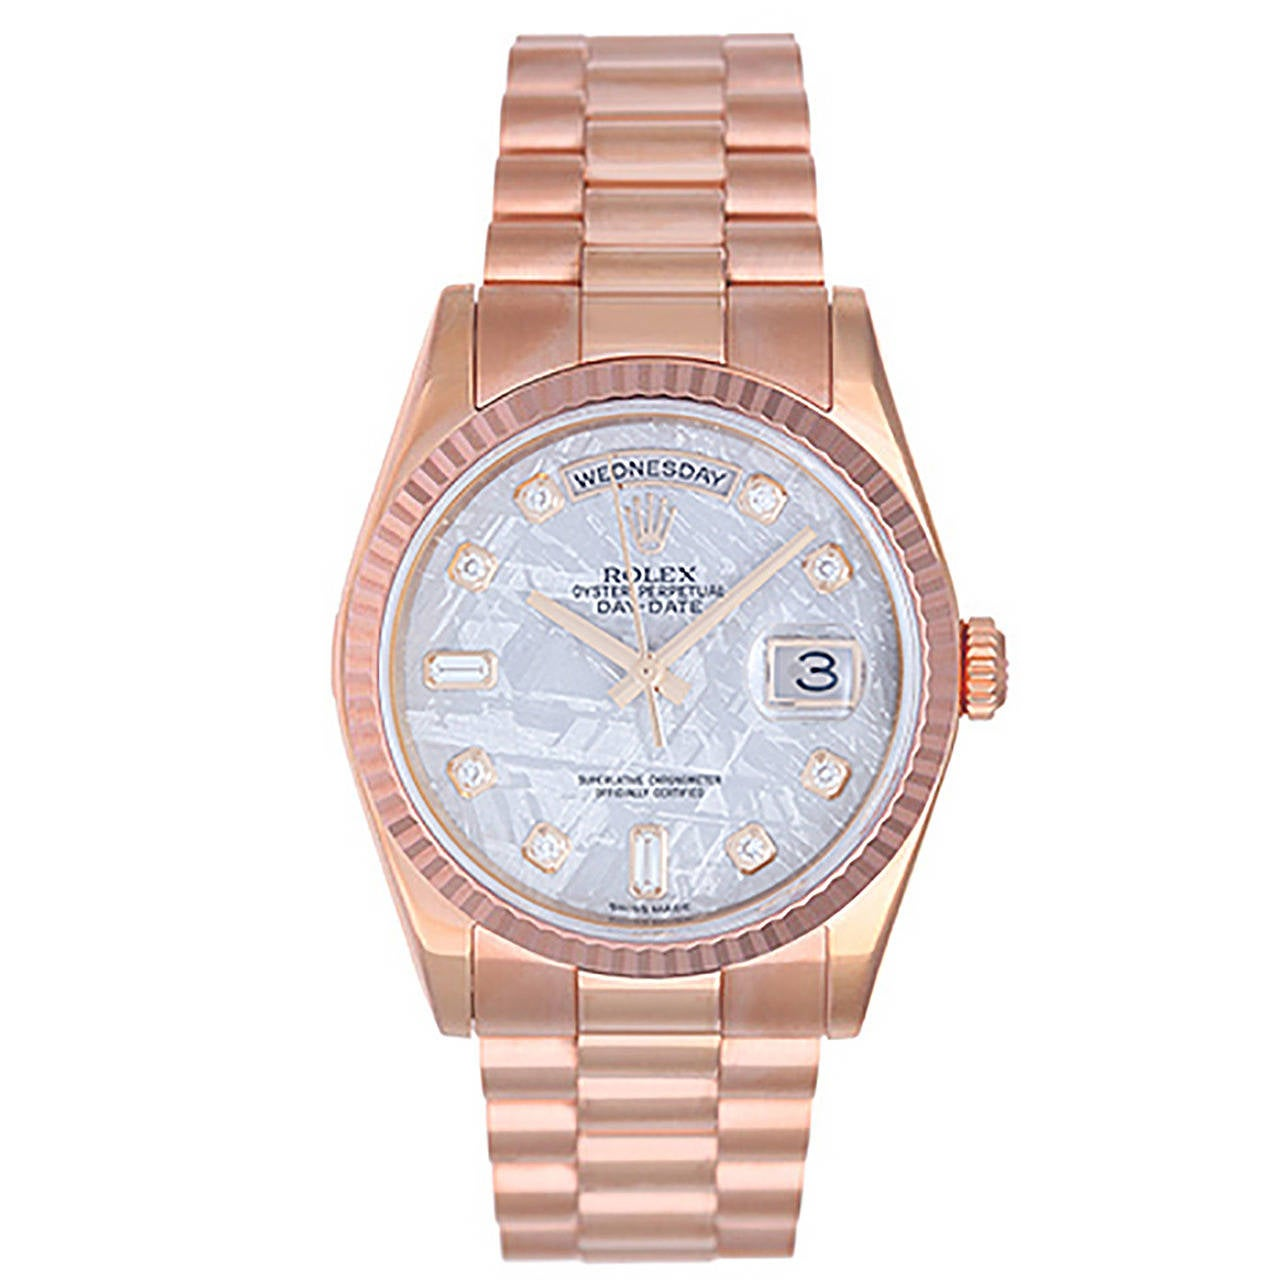 Rolex Rose Gold President Day-Date Meteorite Diamond Dial Wristwatch Ref 118235 1